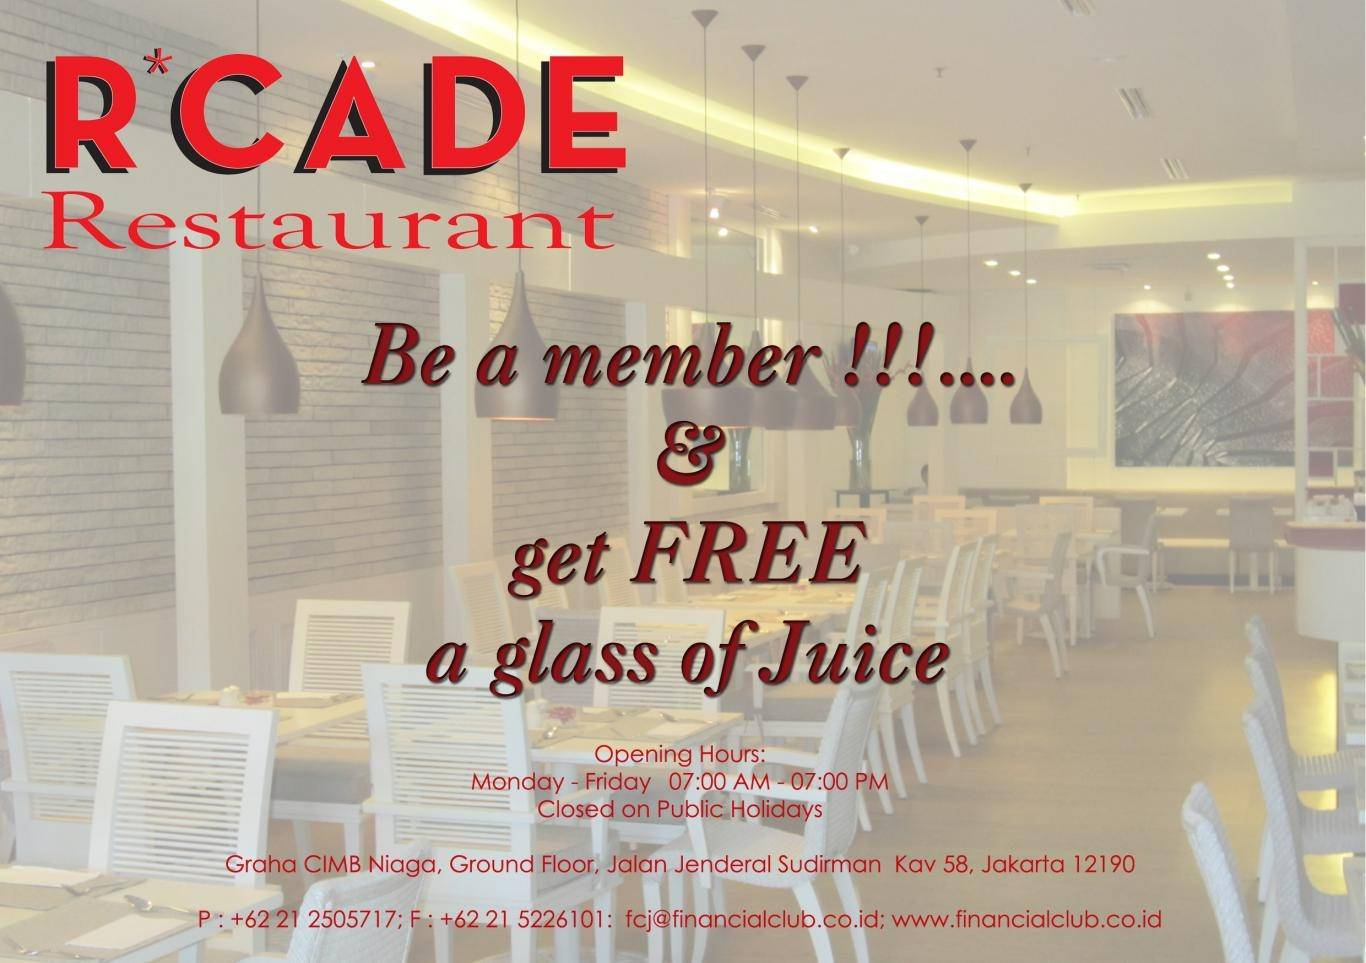 Join R'CADE Membership and Get Free Juice!